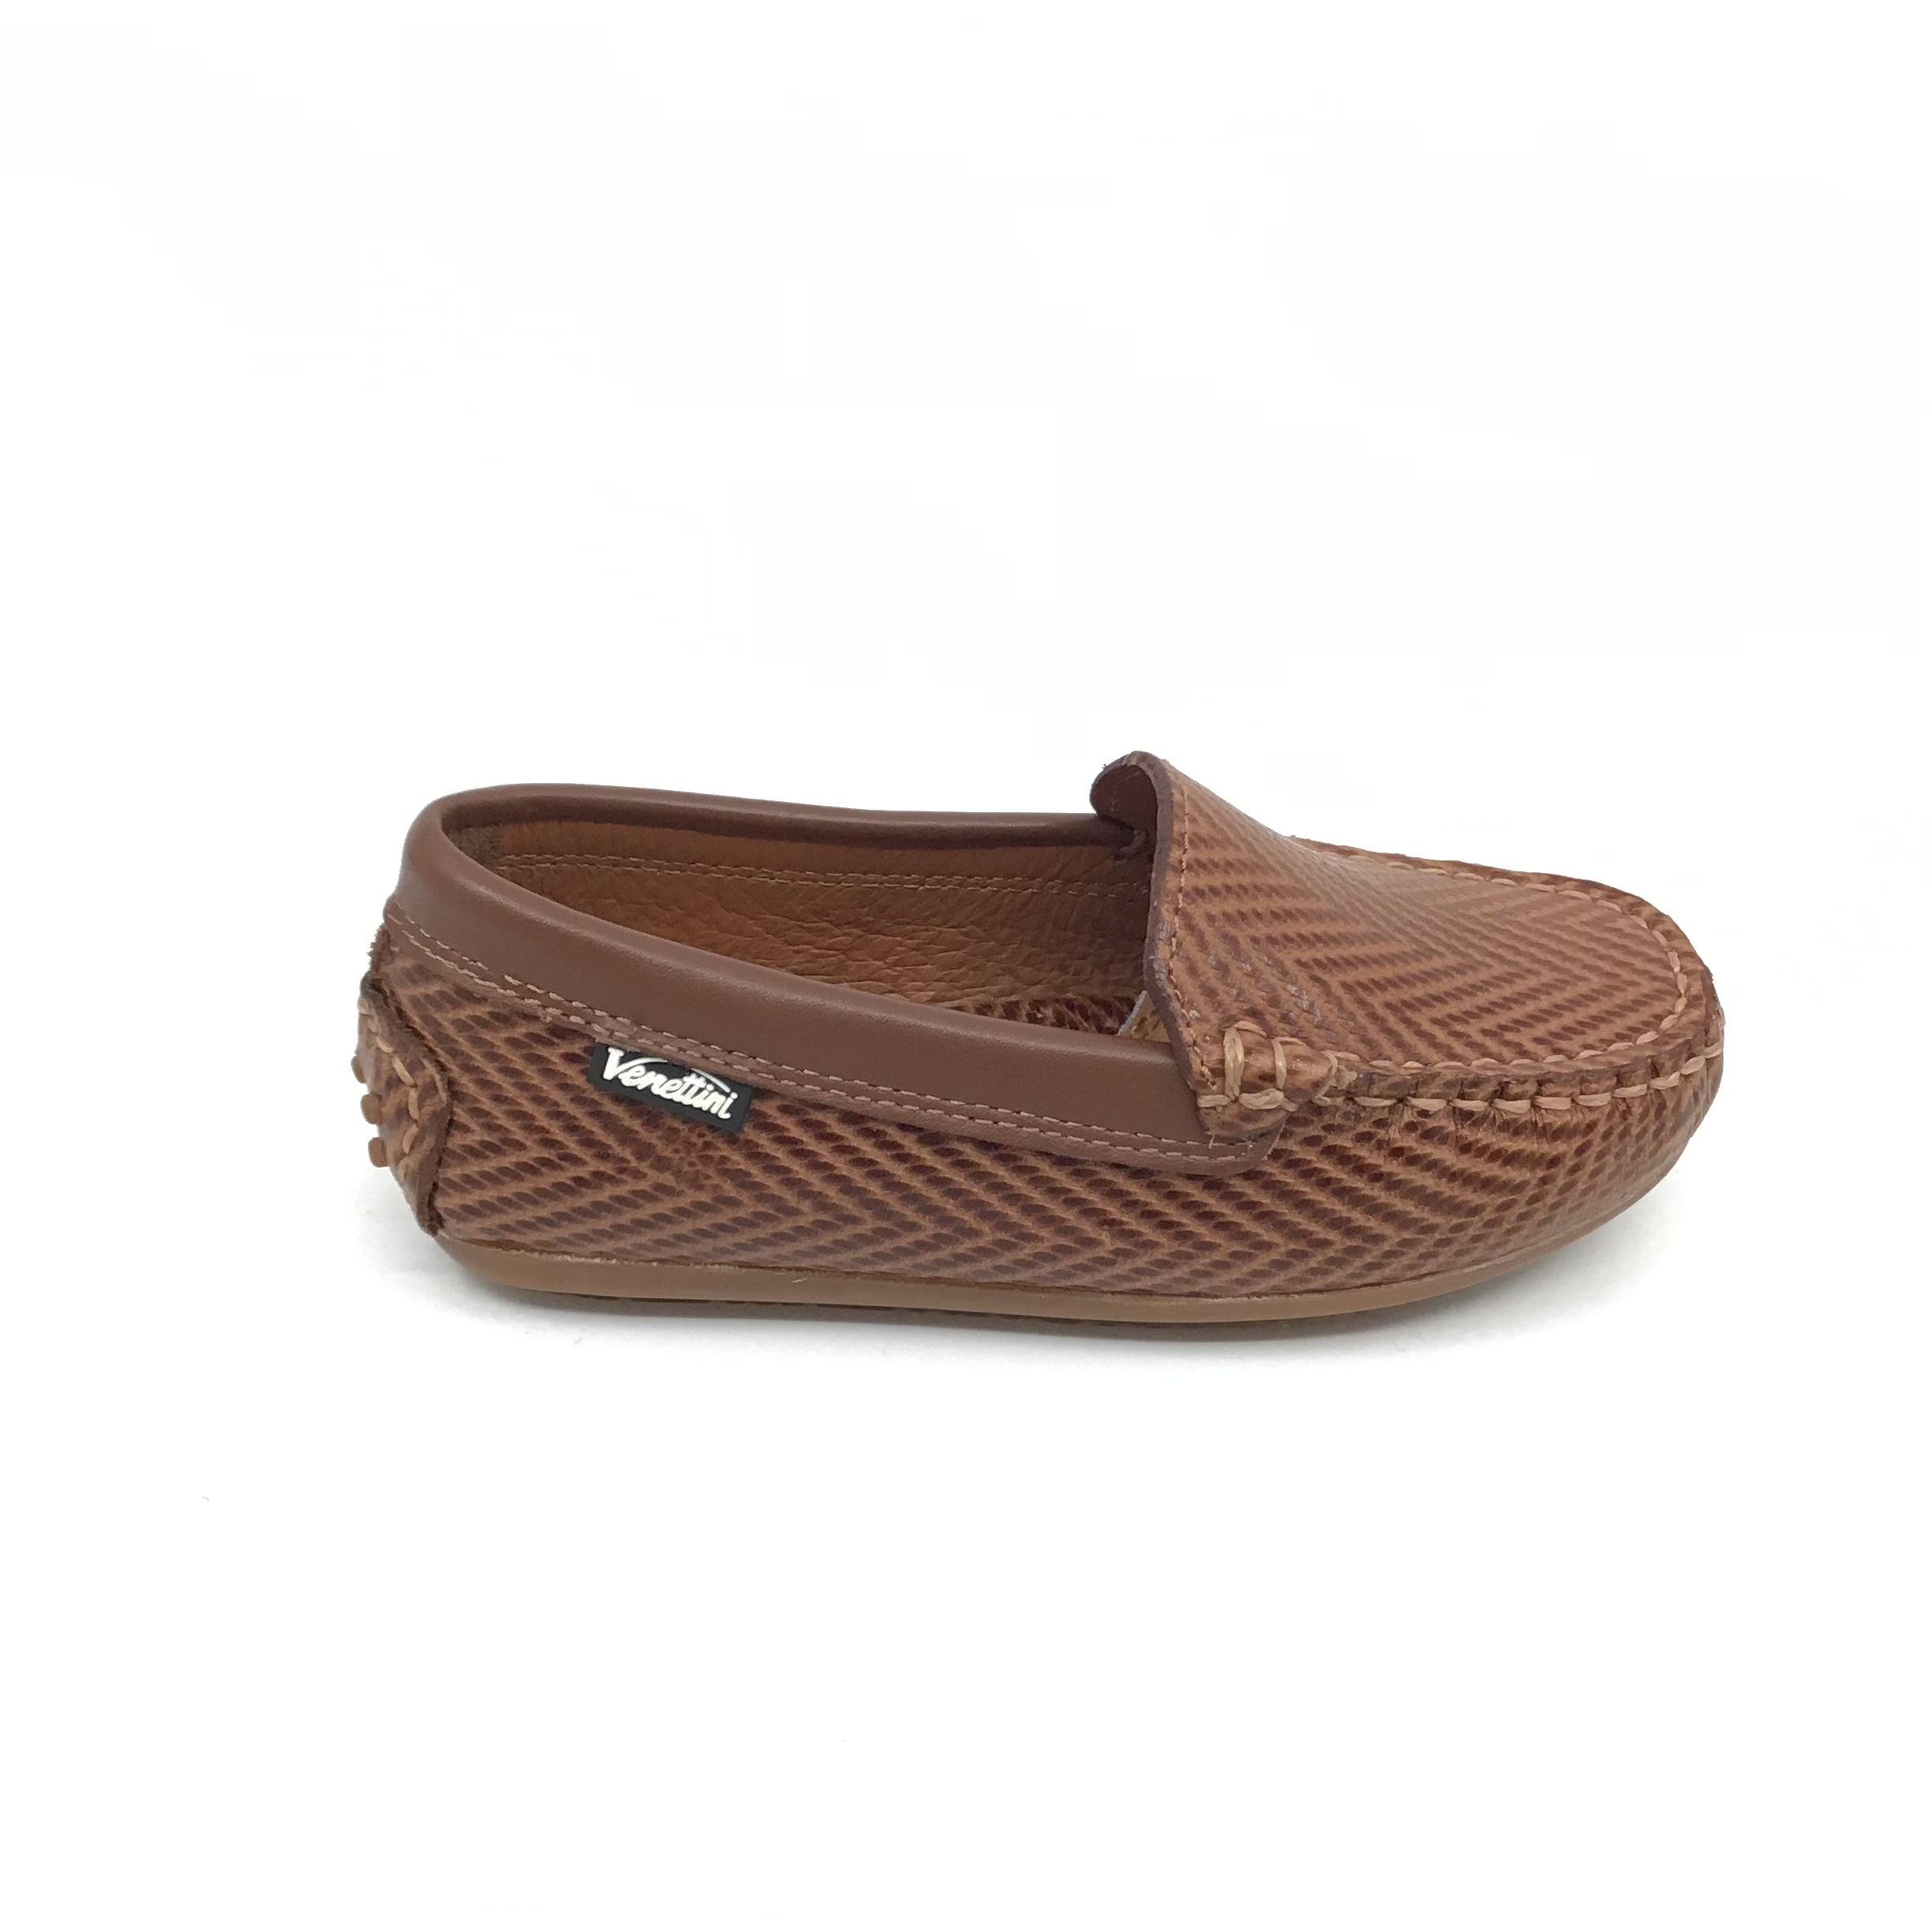 Venettini Brown Loafer